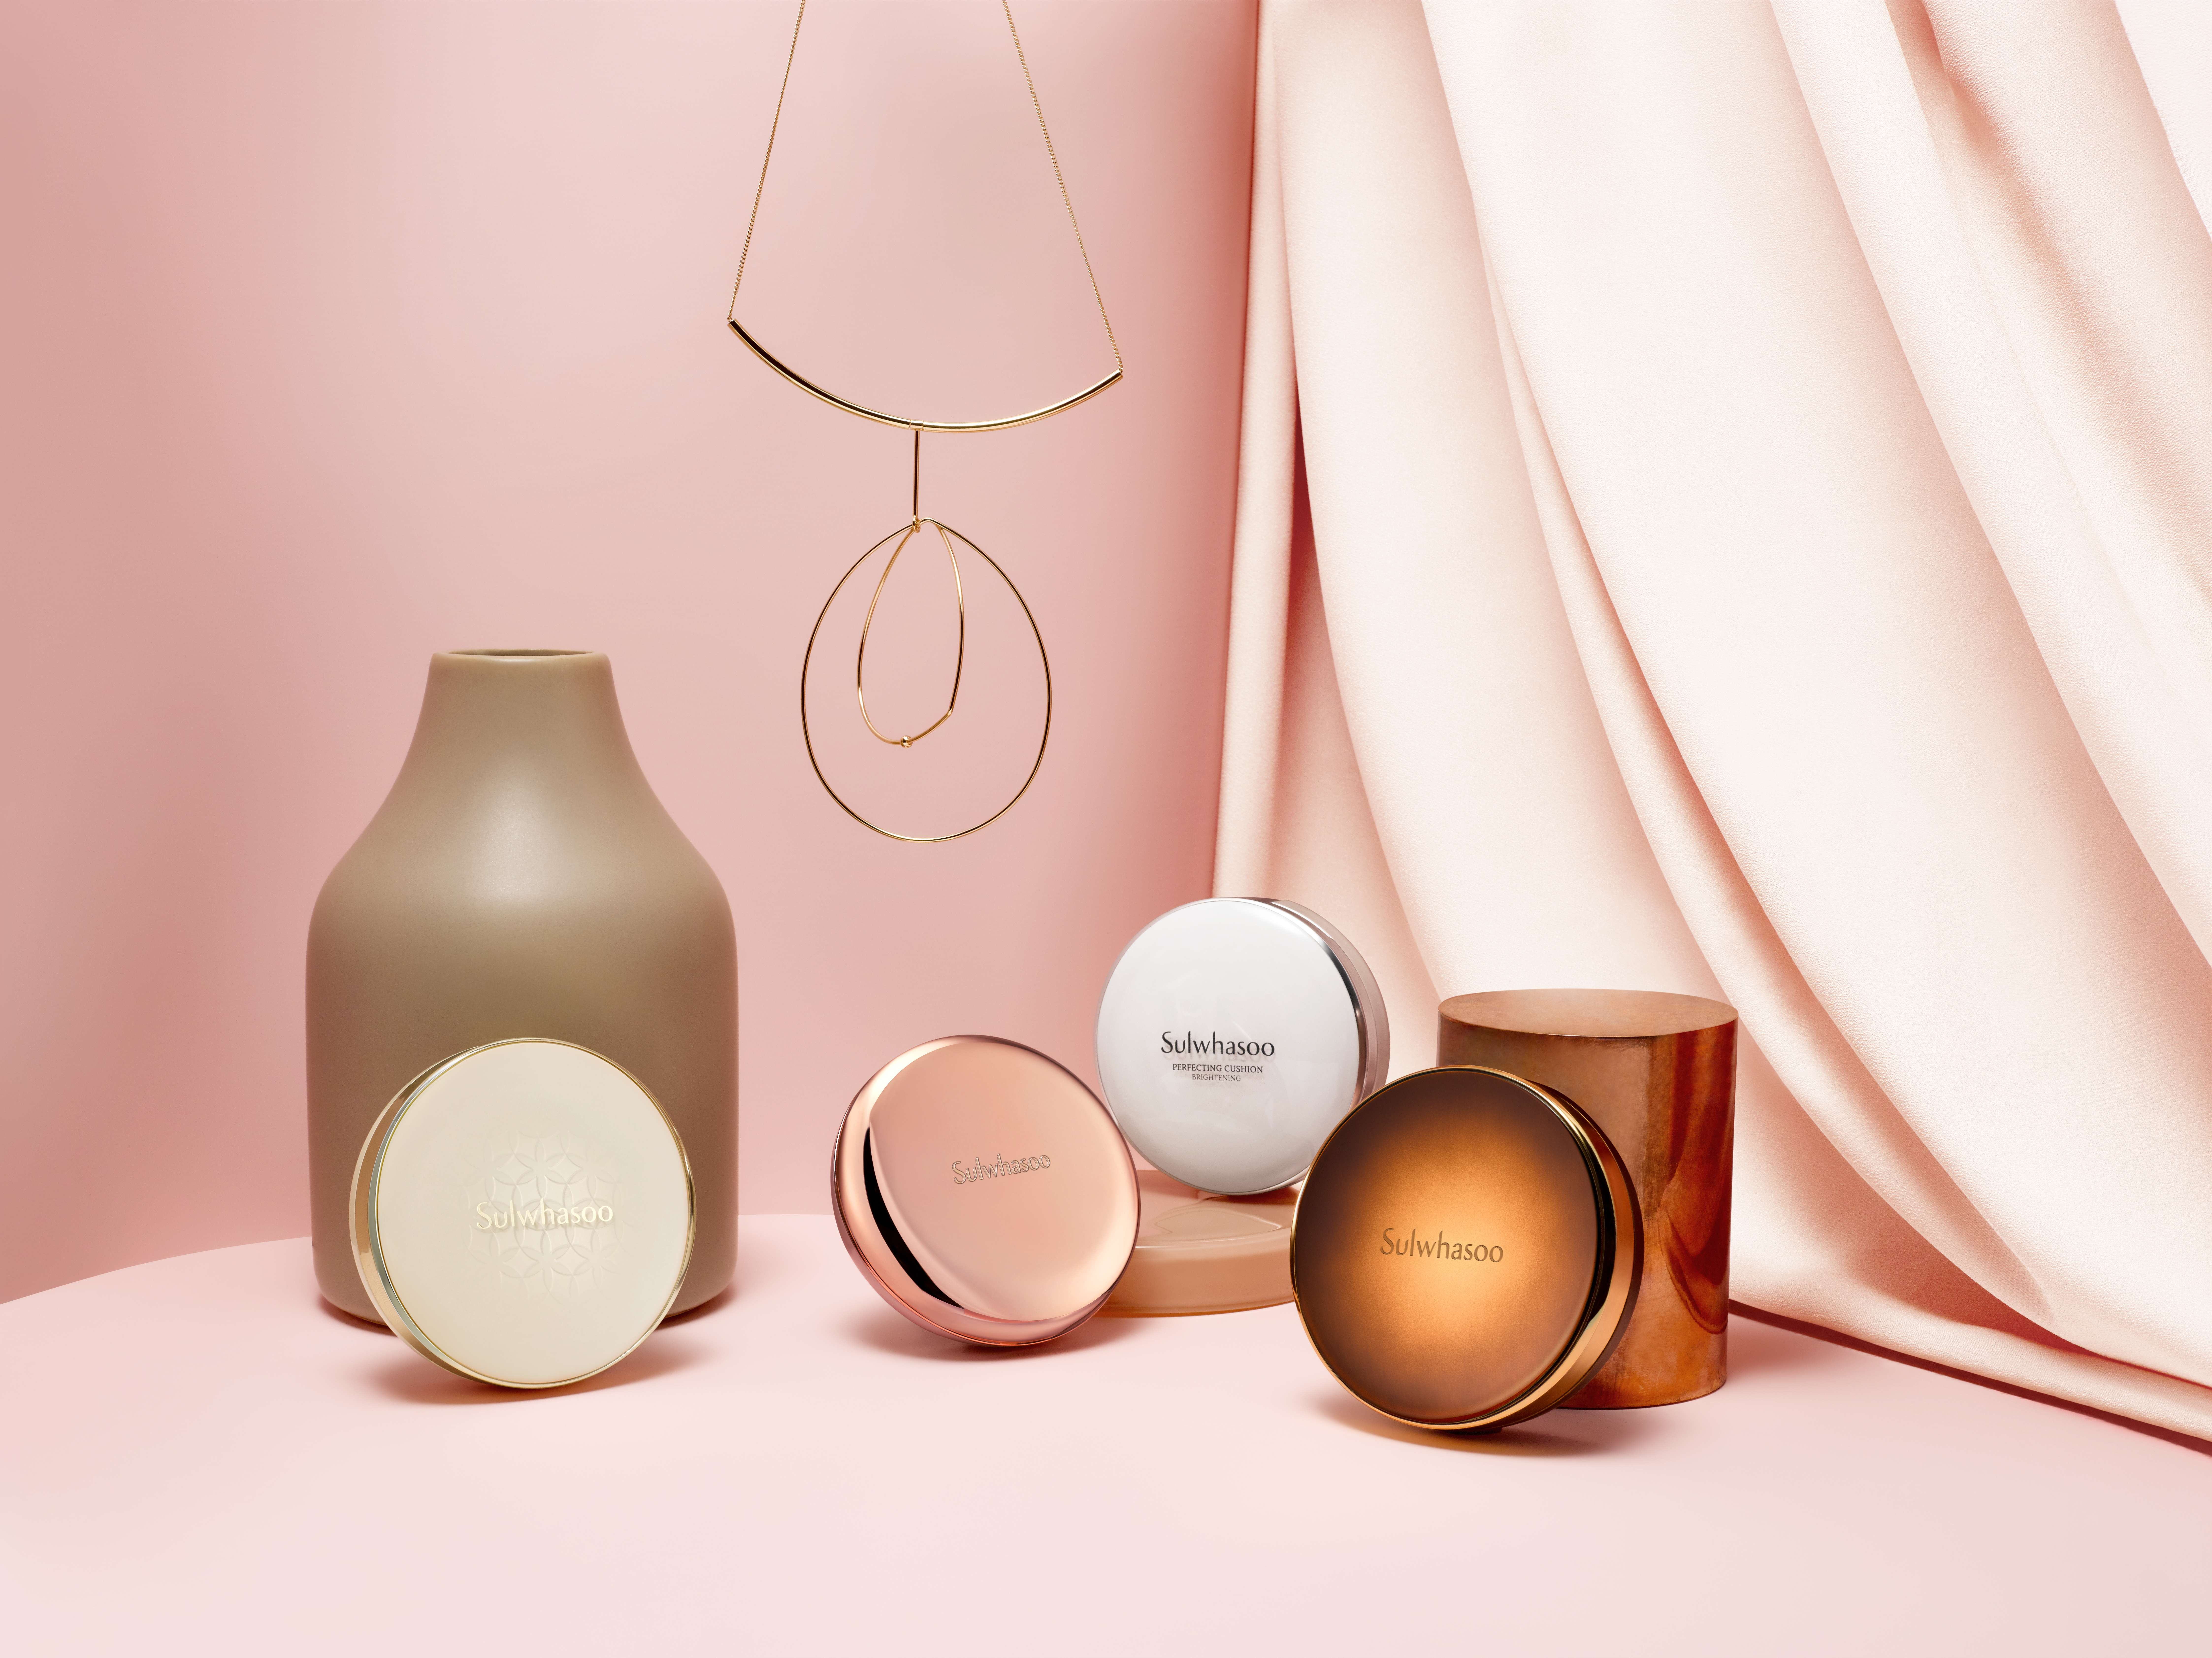 Sulwhasoo Sheer Lasting Gel Cushion & Foundation 6